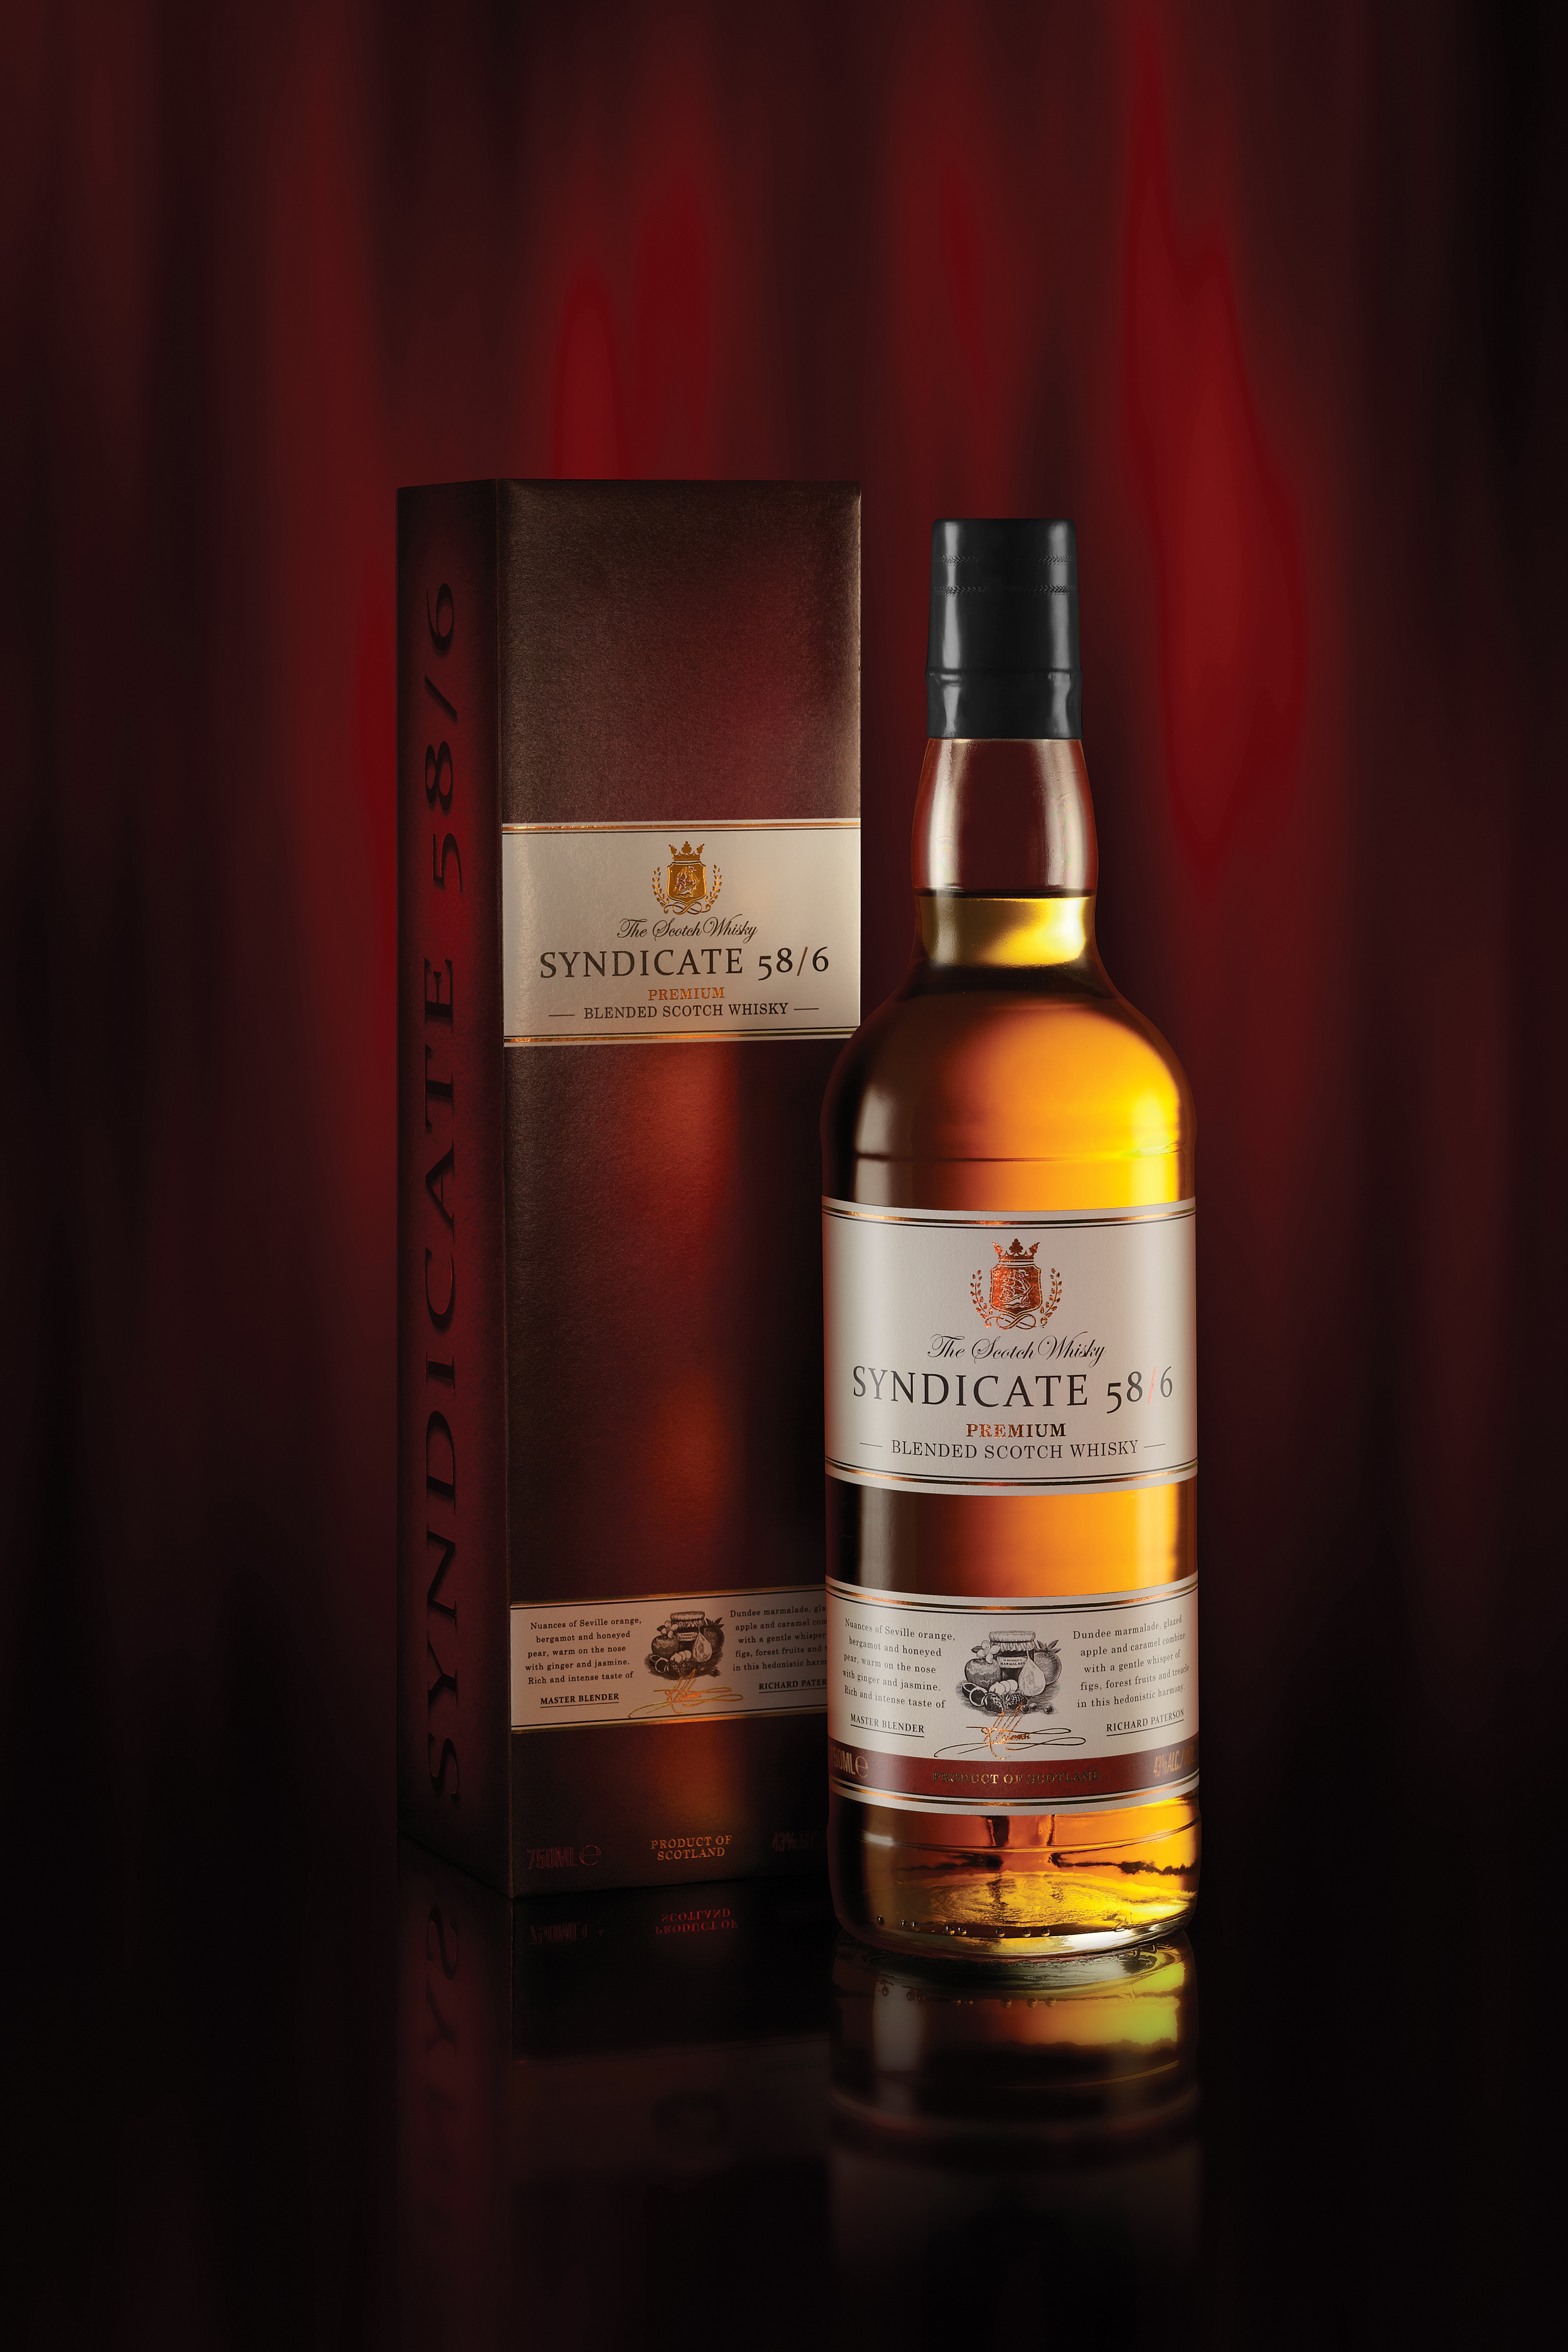 Syndicate 58/6 Blended Scotch Whisky